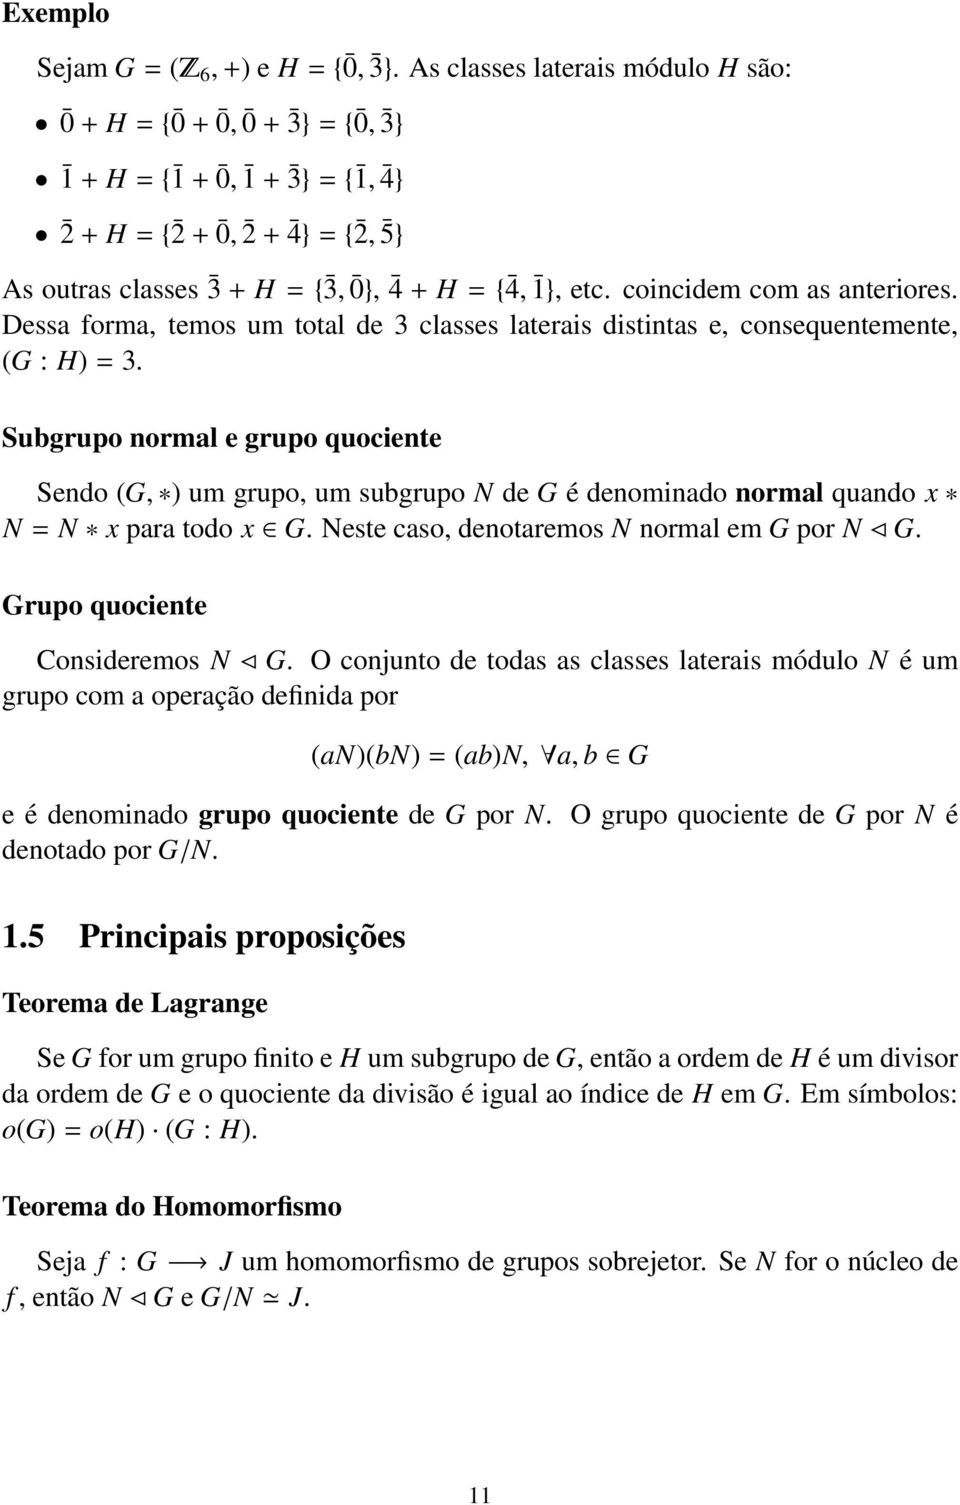 coincidem com as anteriores. Dessa forma, temos um total de 3 classes laterais distintas e, consequentemente, (G : H) = 3.